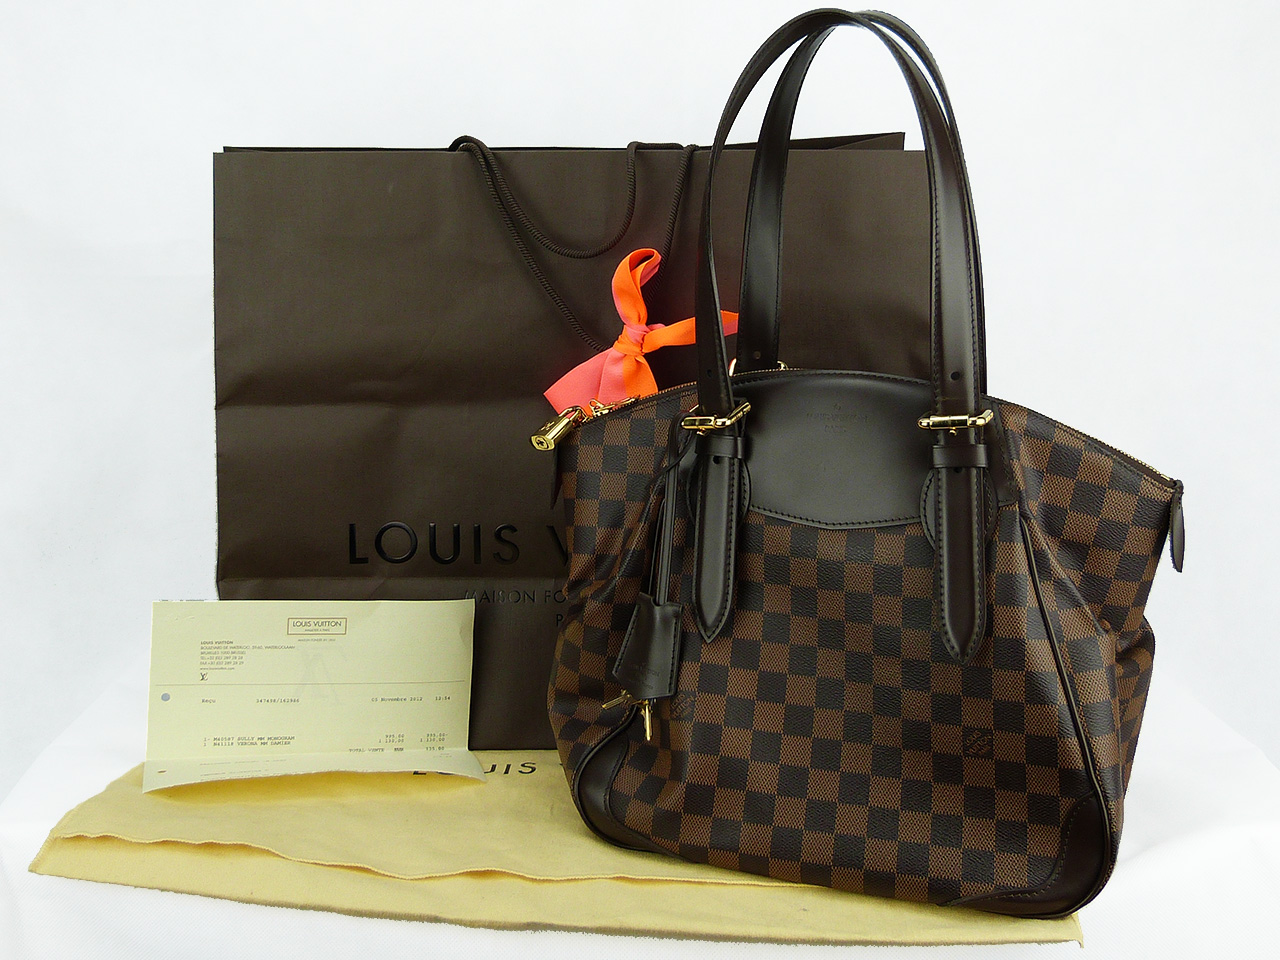 Sac à main Louis Vuitton Verona MM Authentique d'occasion en toile enduite damier ébène